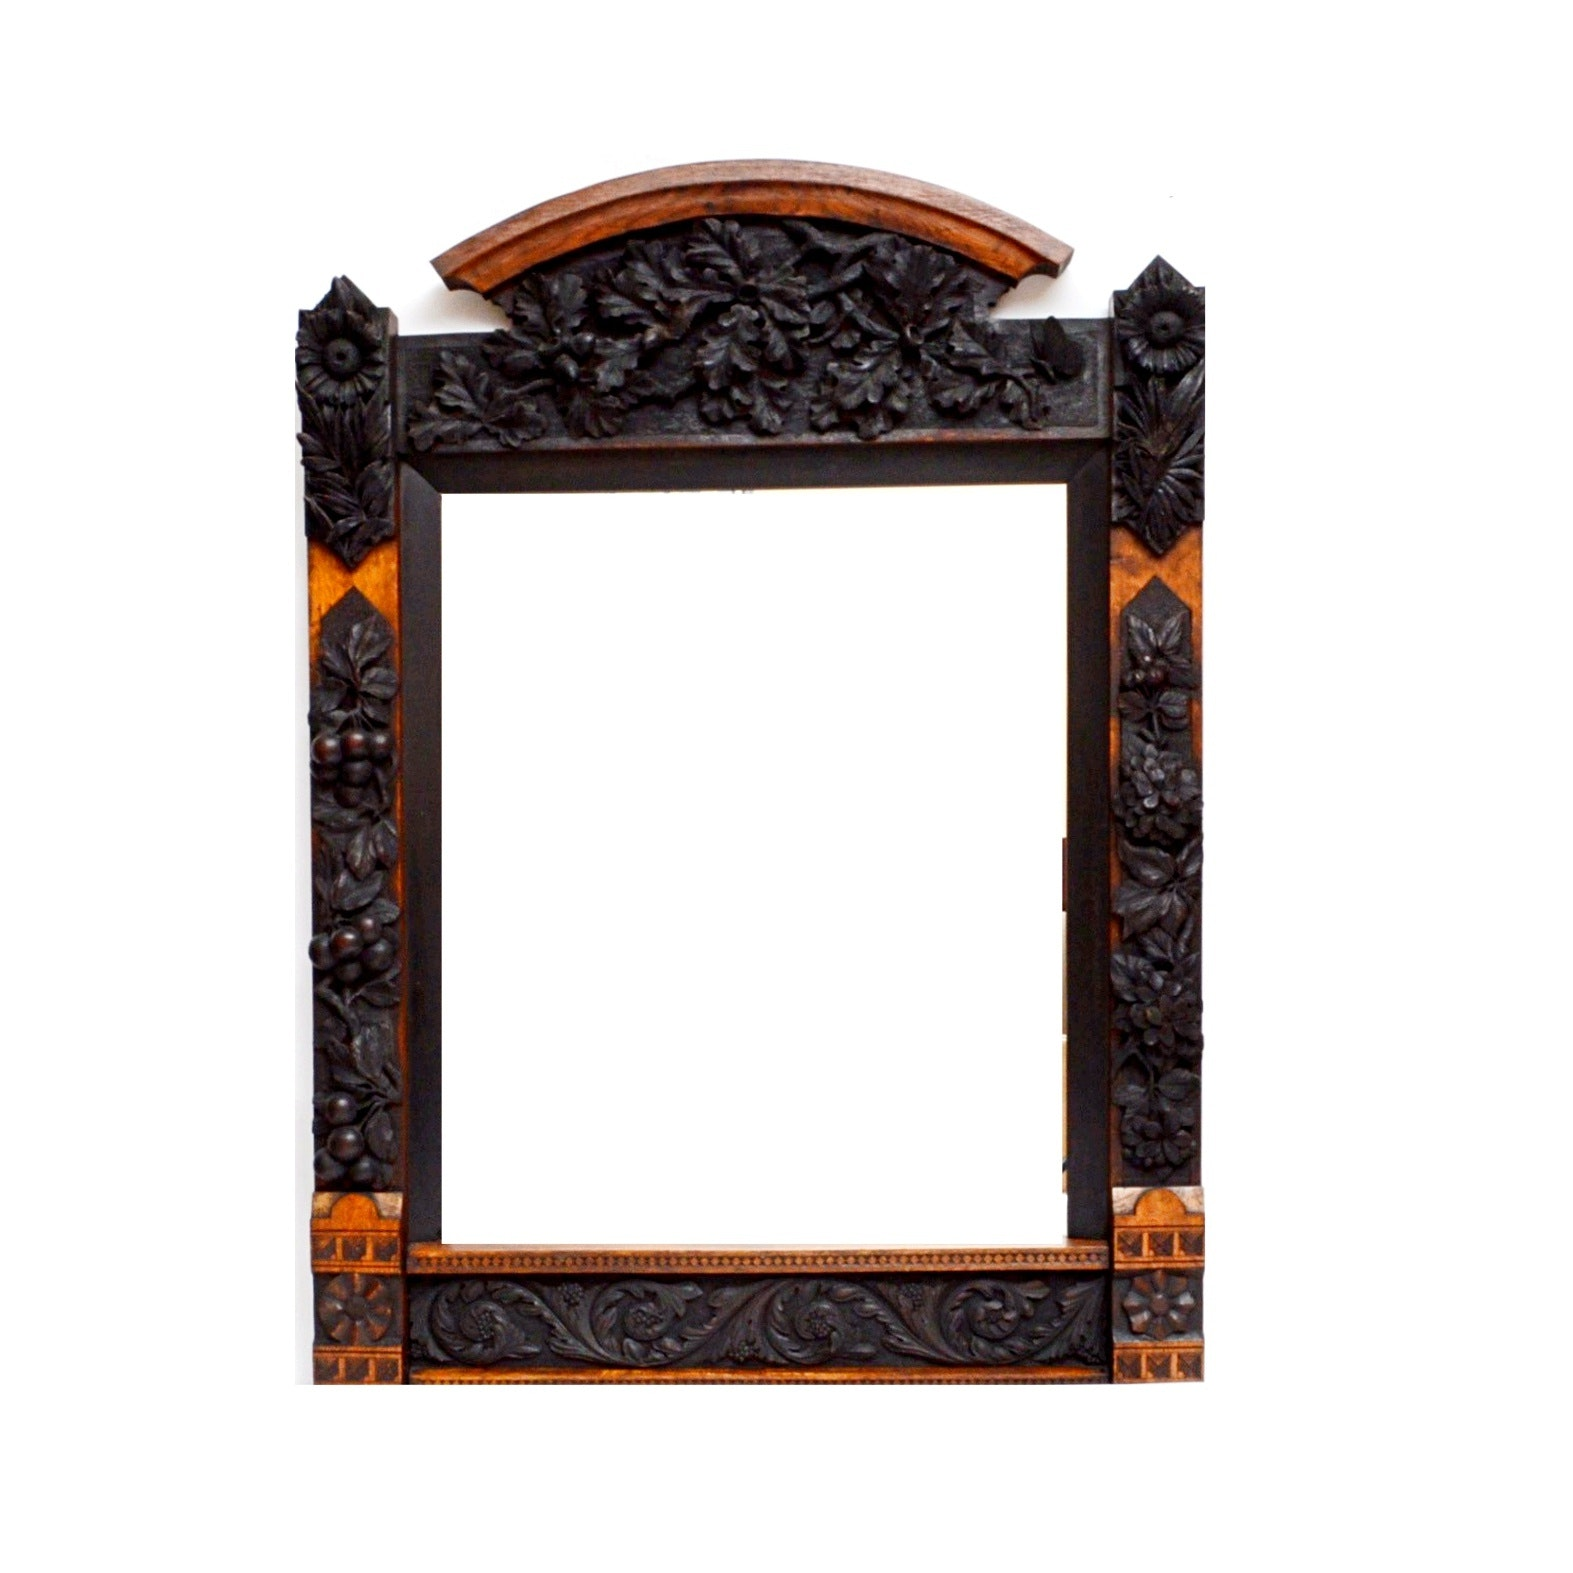 Everett Chauncey (Attributed) Hand Carved Wall Mirror